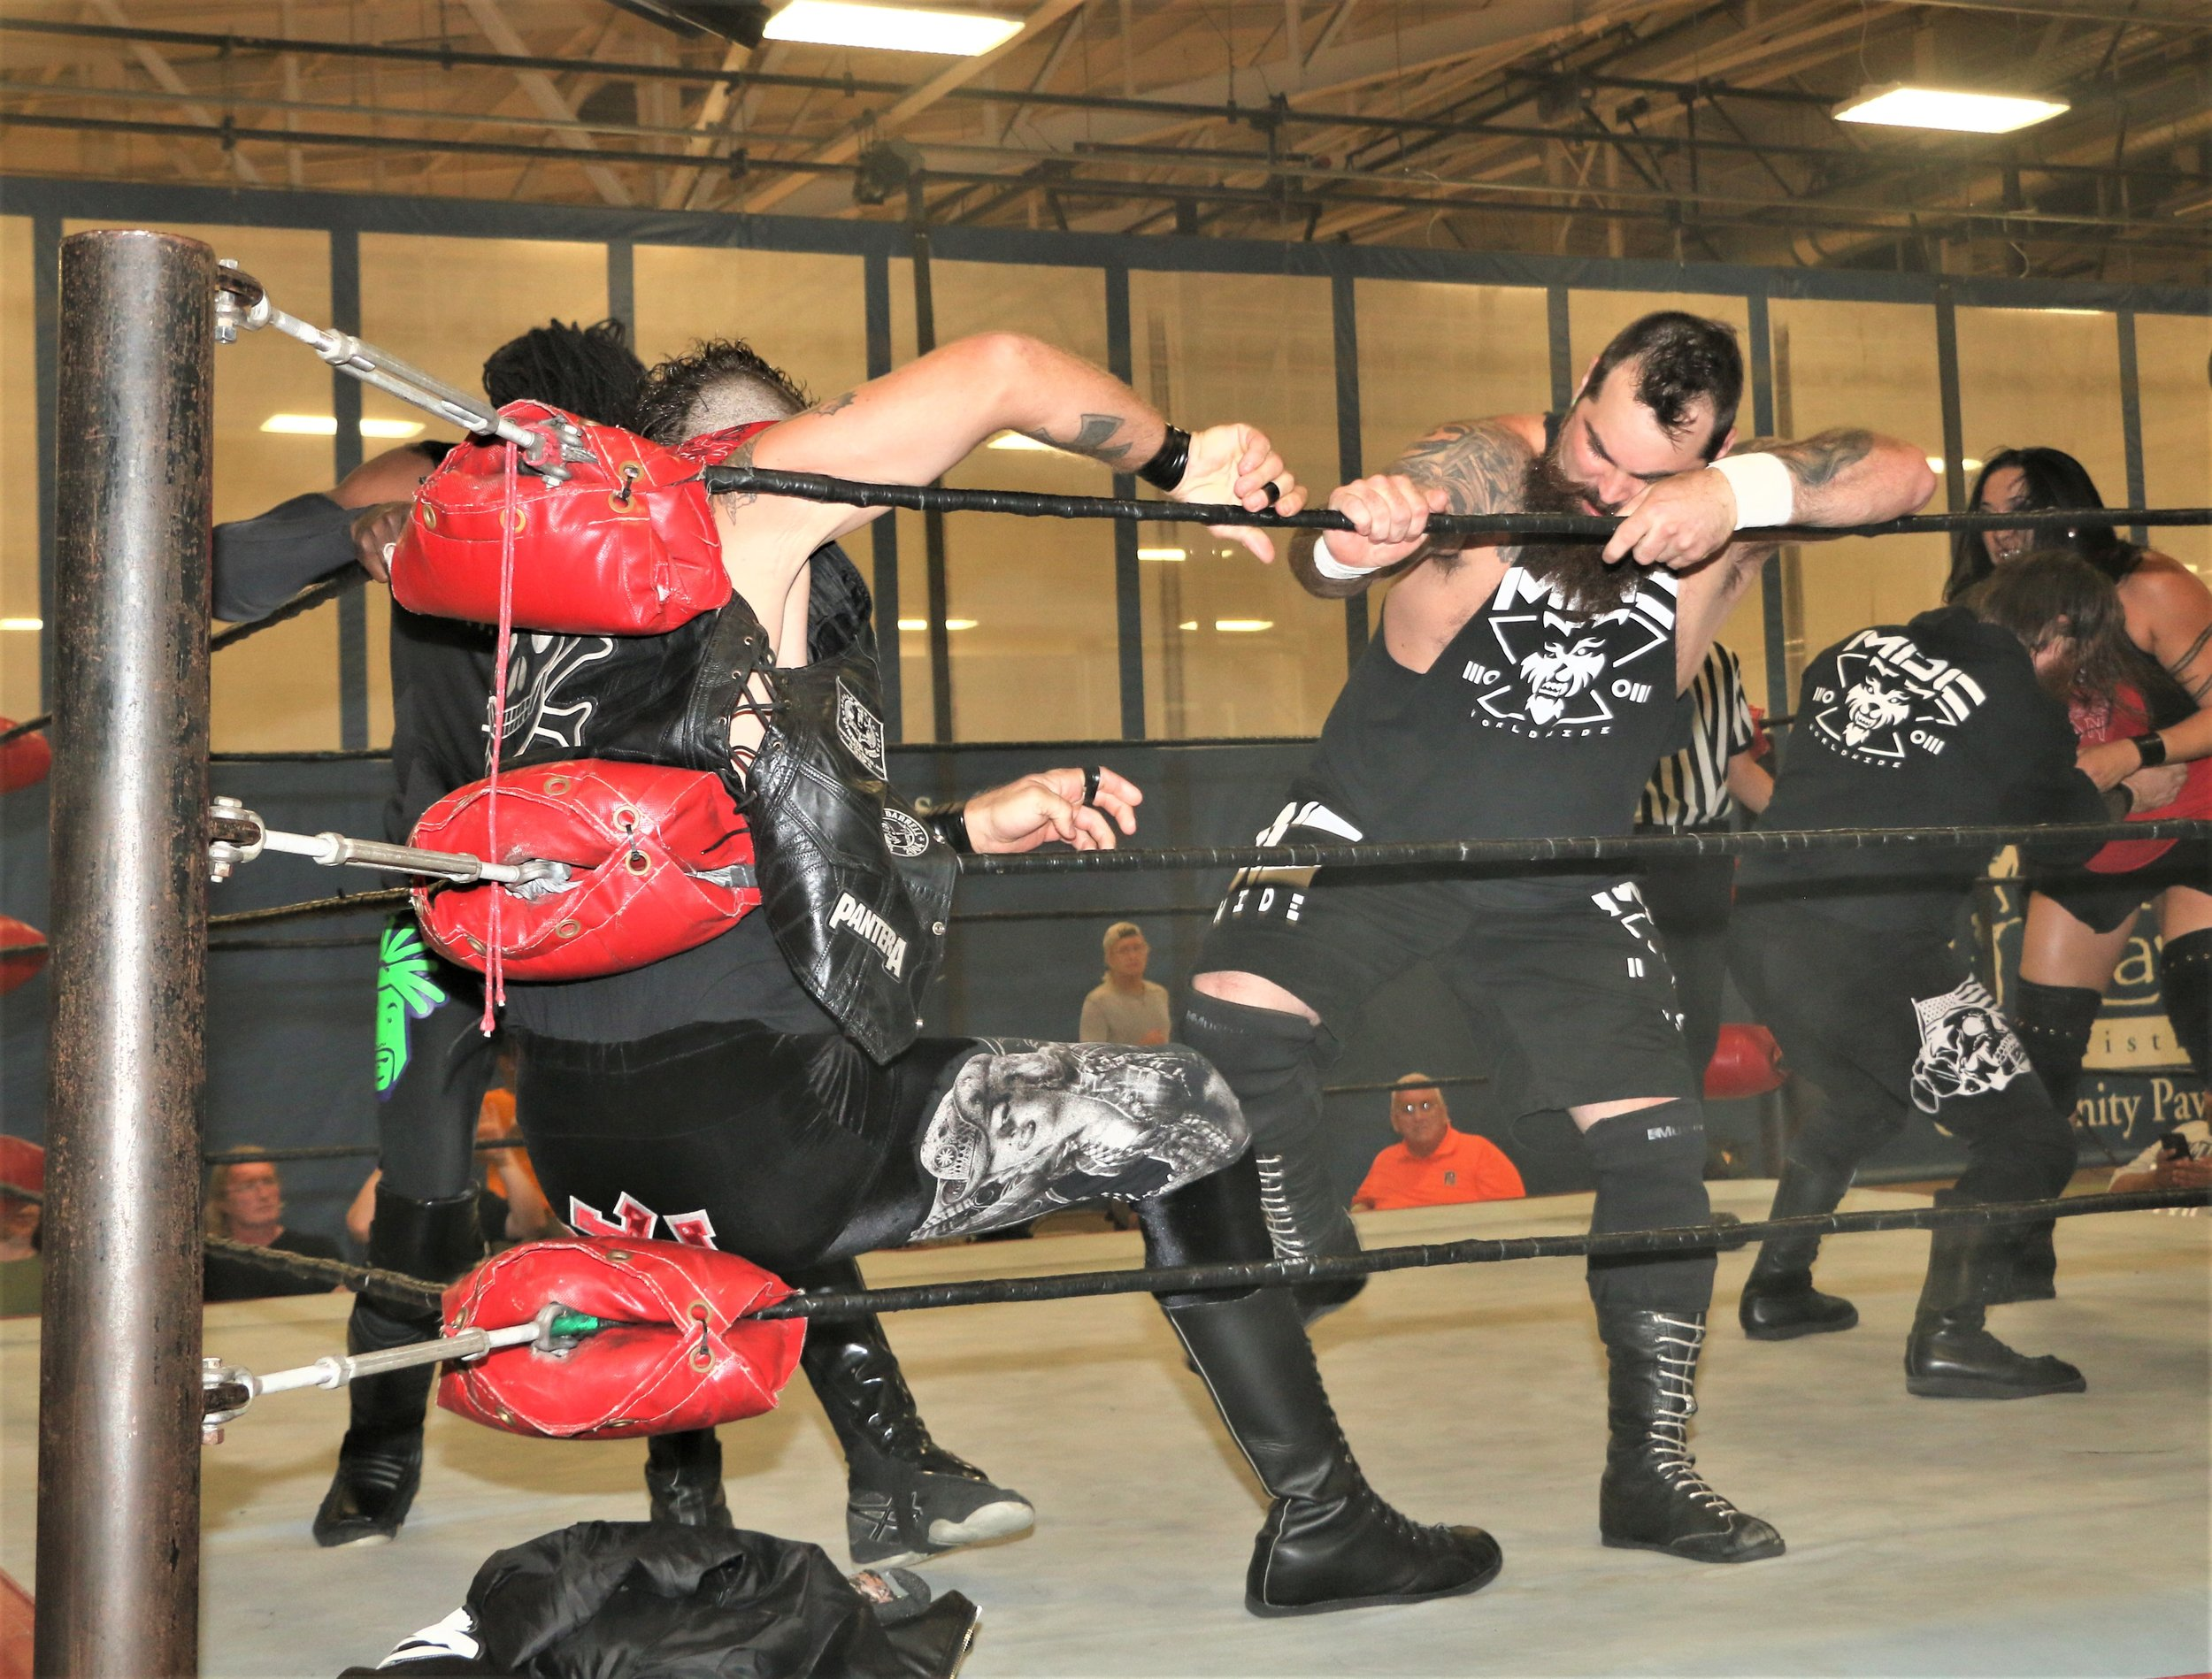 Nick Colucci, right, kicks Ruff Crossing in the corner during the 10-man elimination tag-team match.